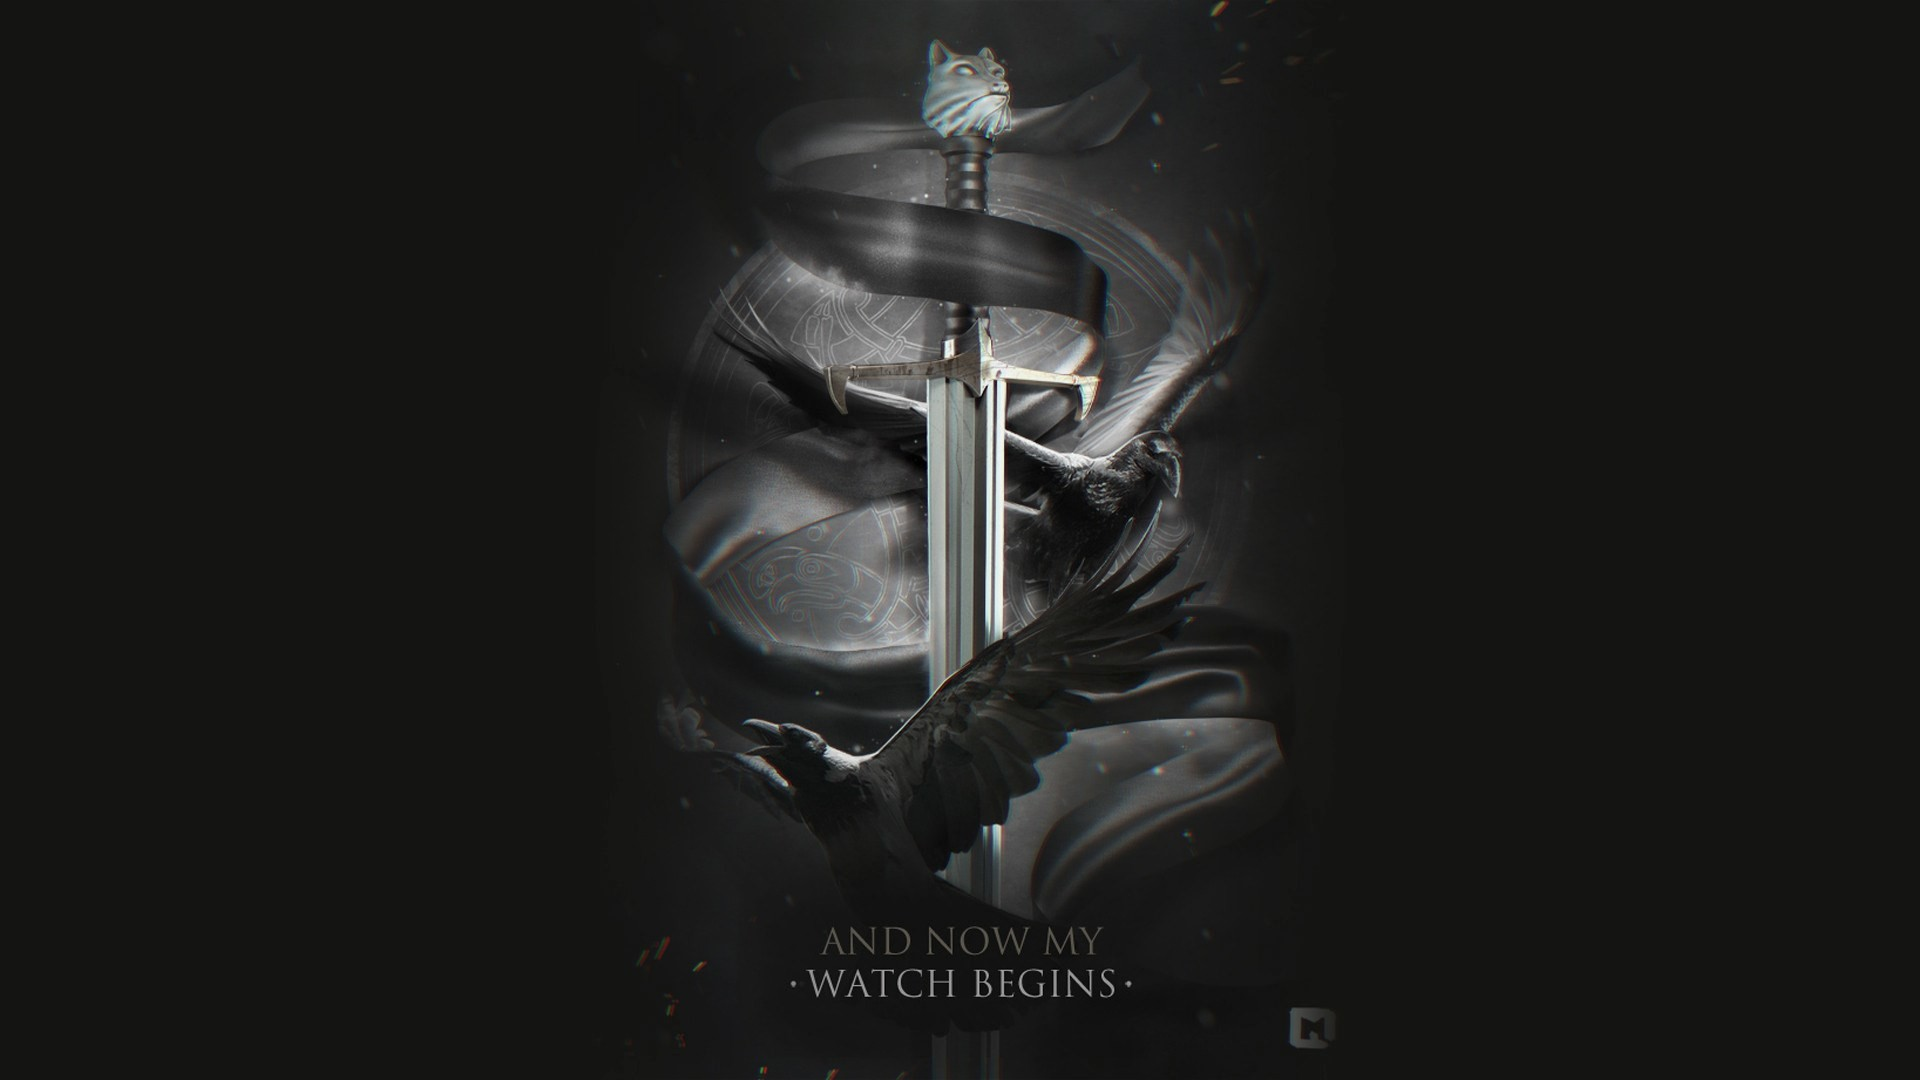 Game Of Thrones Wallpaper Android: Game Of Thrones Wallpaper 1920x1080 (60+ Images